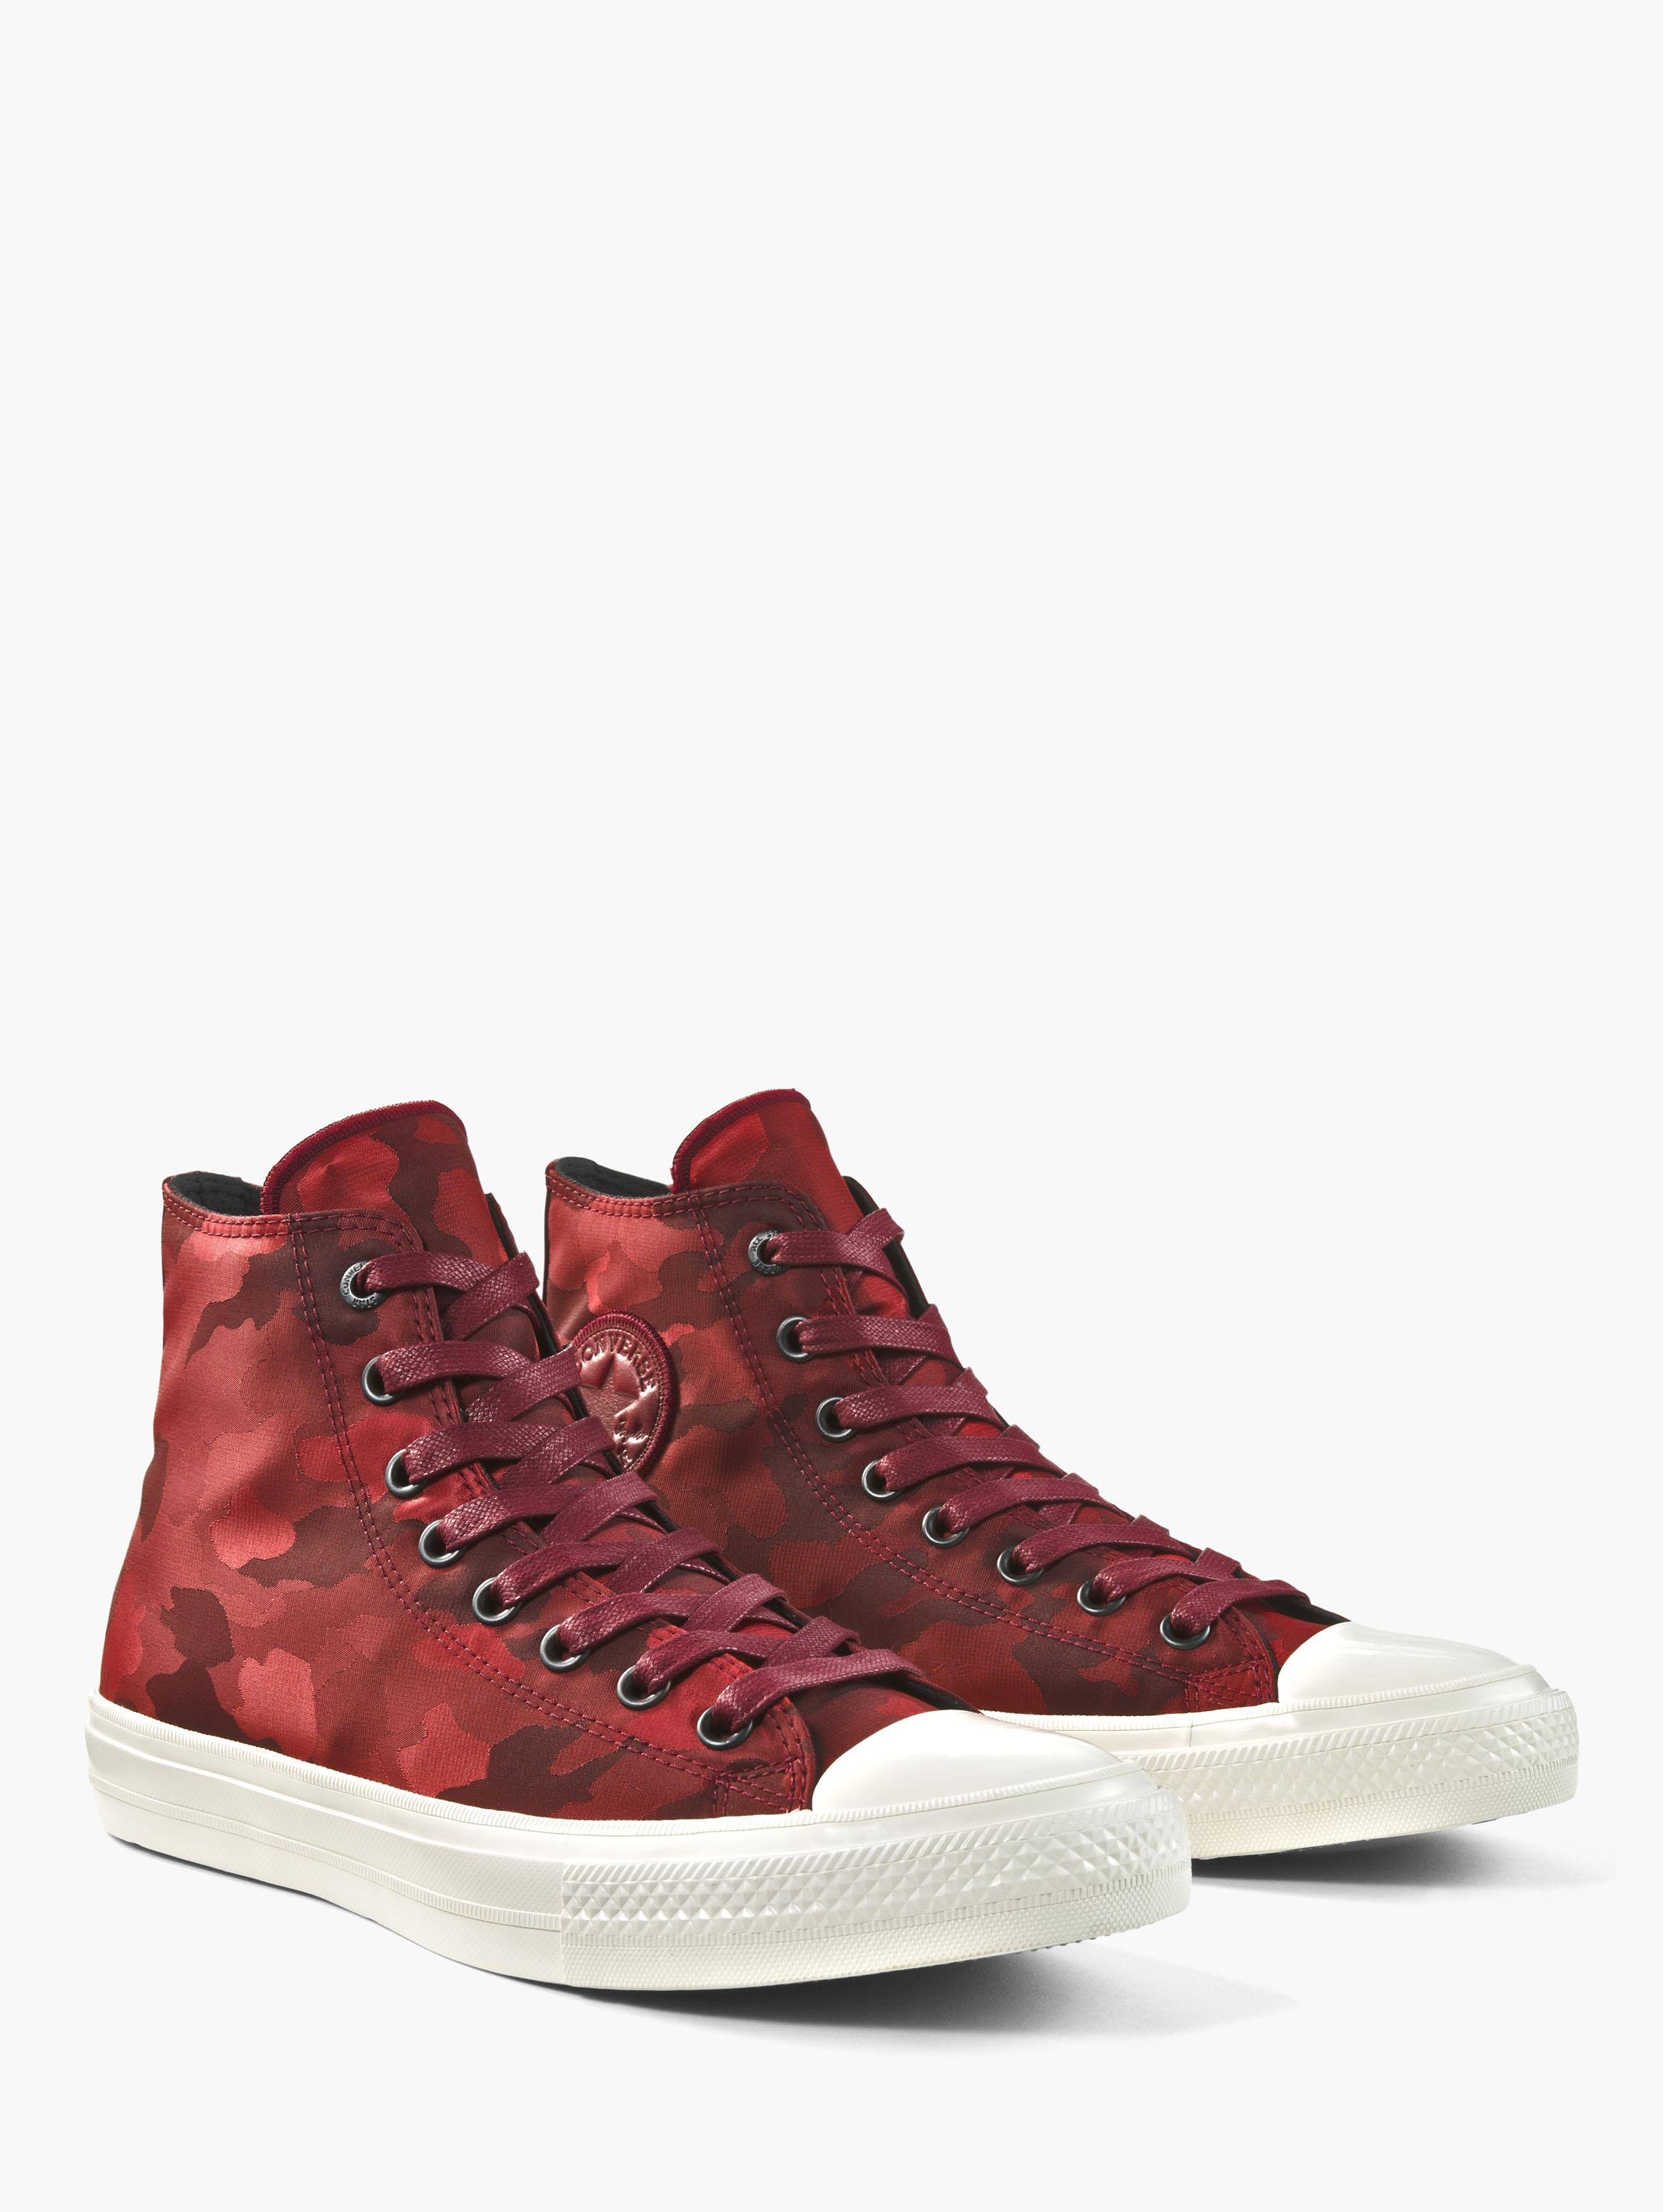 Chuck II Camo High Top